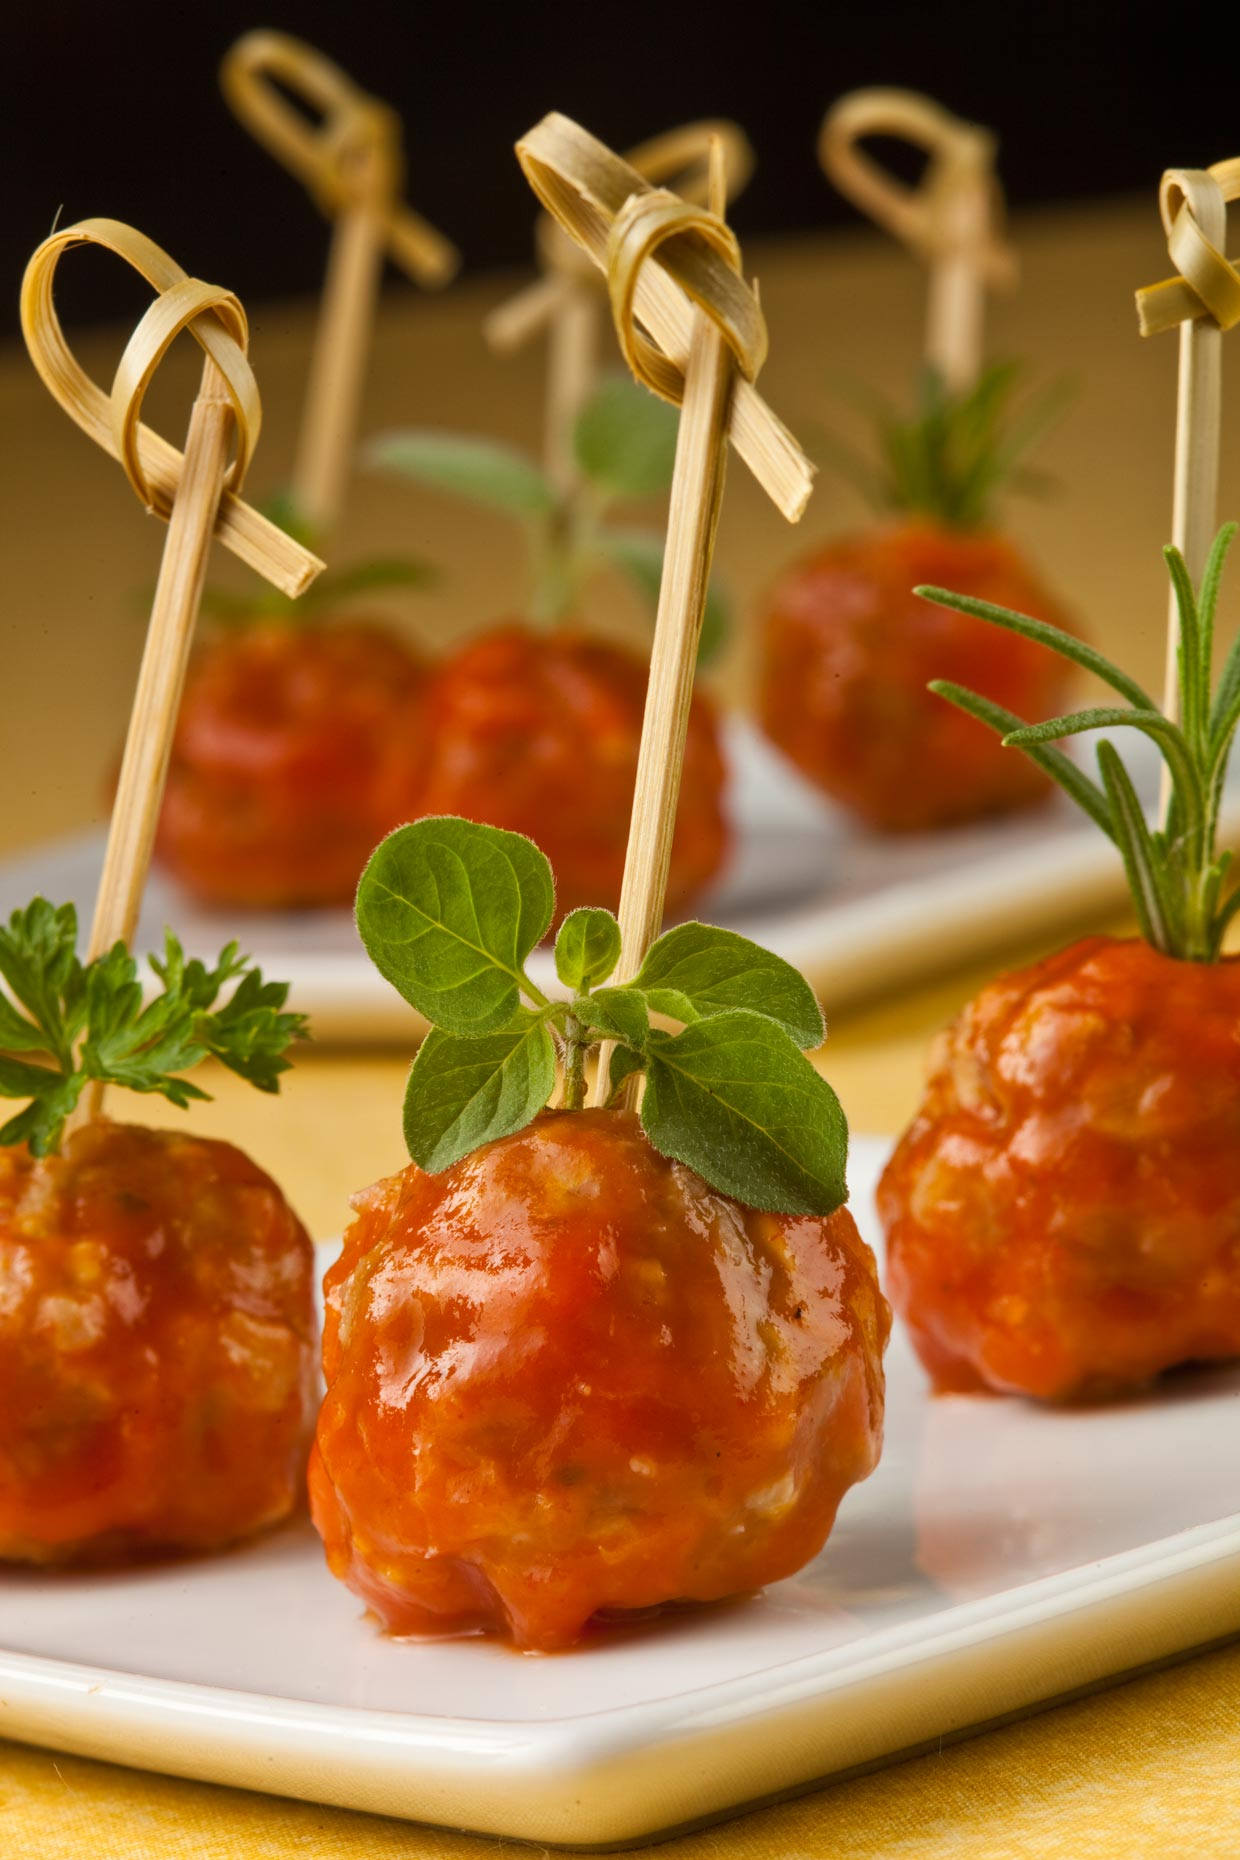 Orlando Professional Food Photography | Meatballs